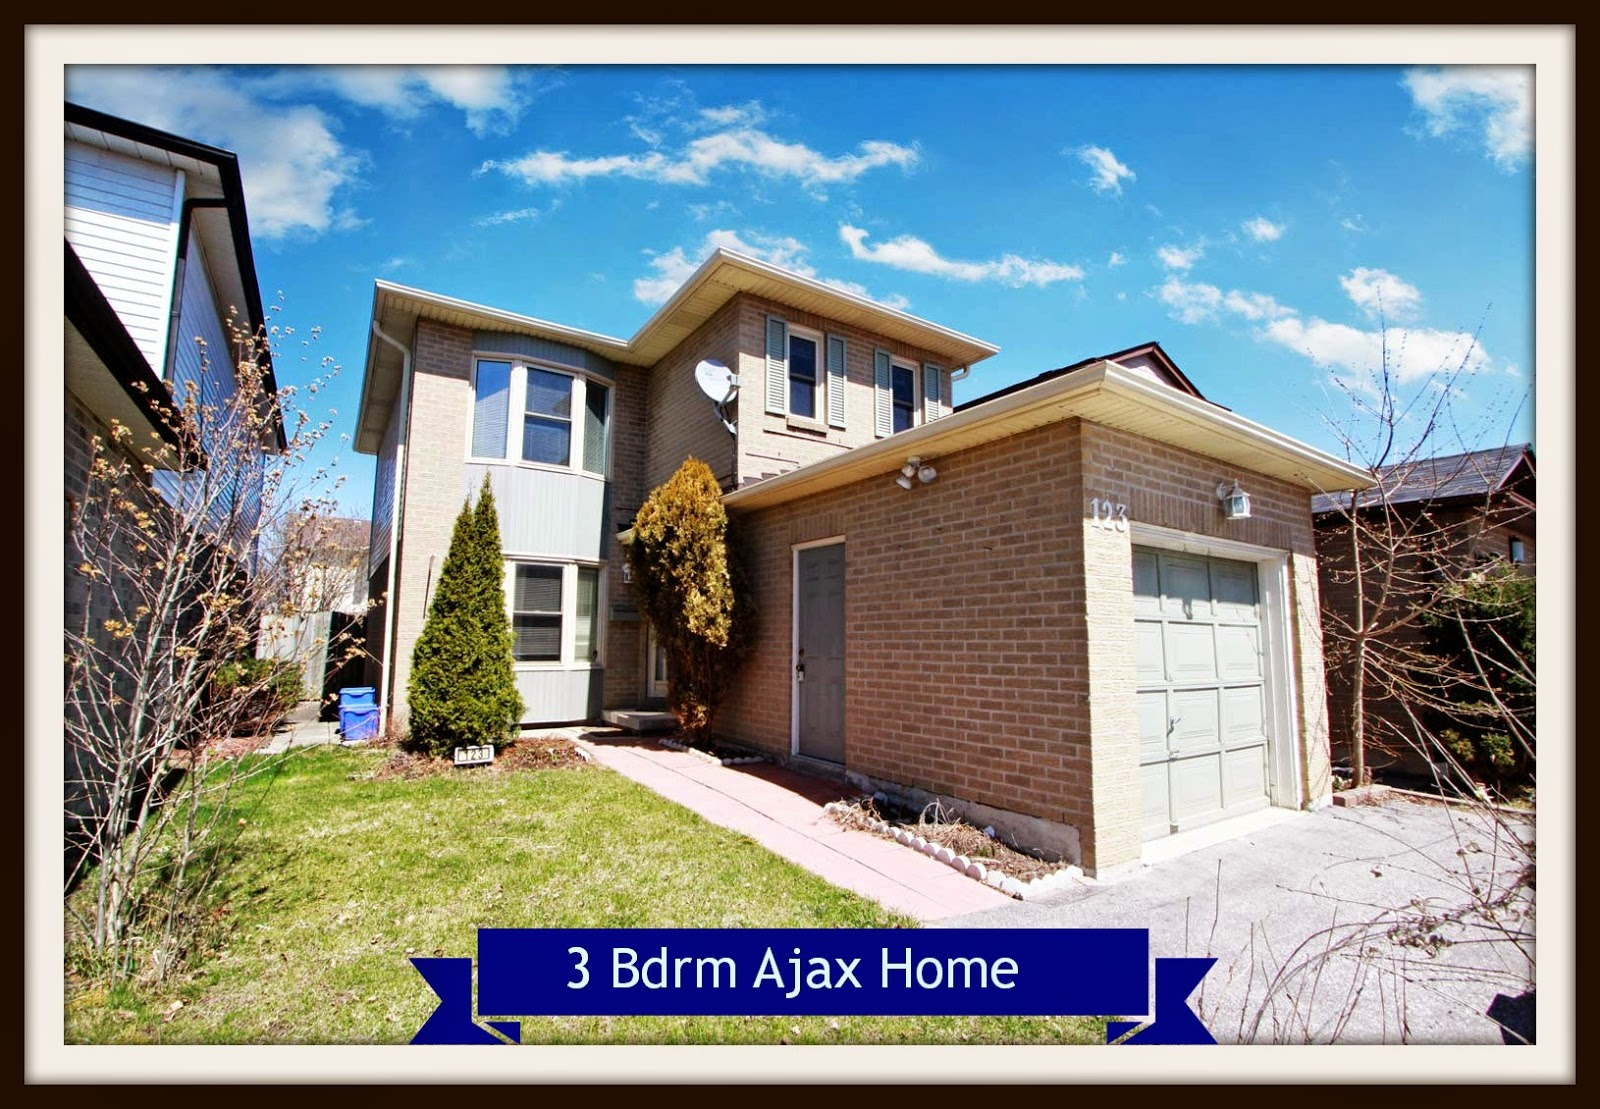 Pickering Ajax Mls Homes Houses For Sale Real Estate